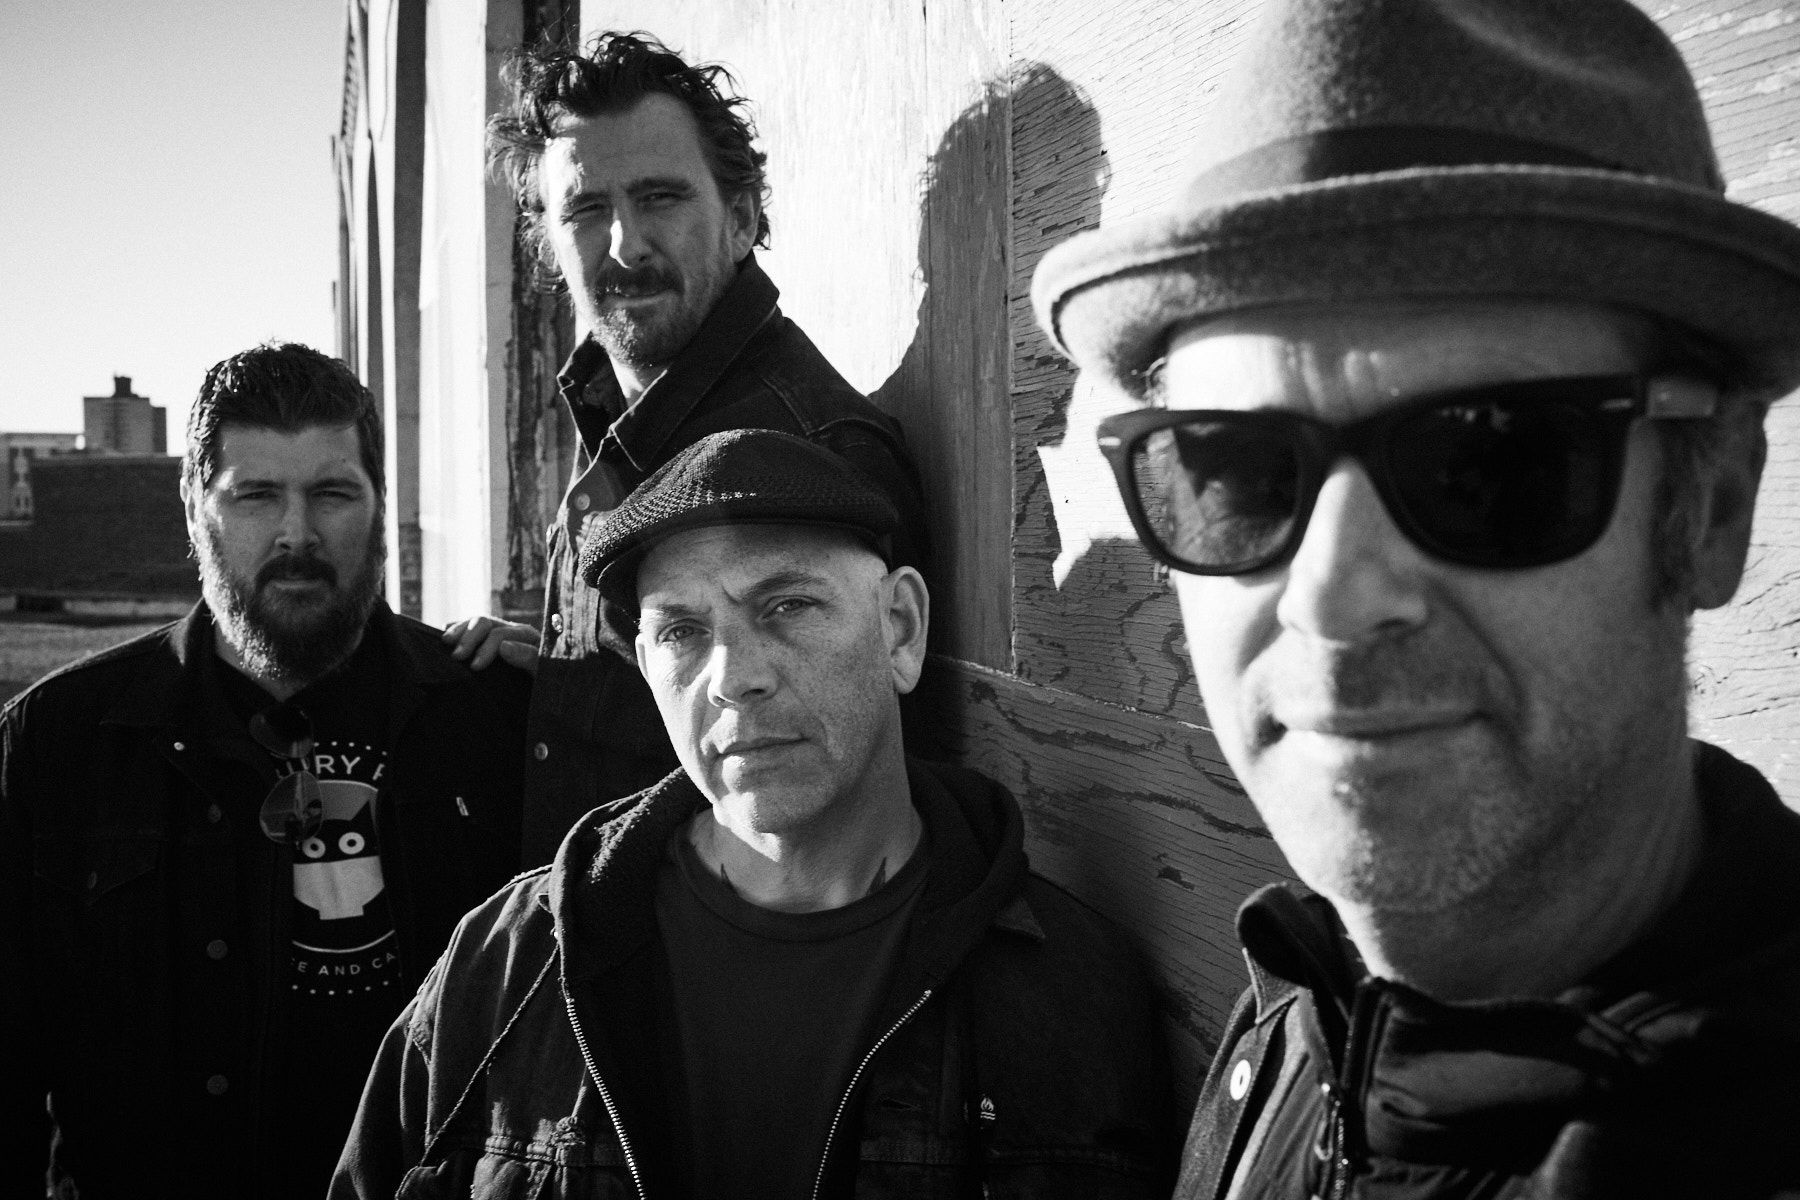 The Bouncing souls 2020 black and white